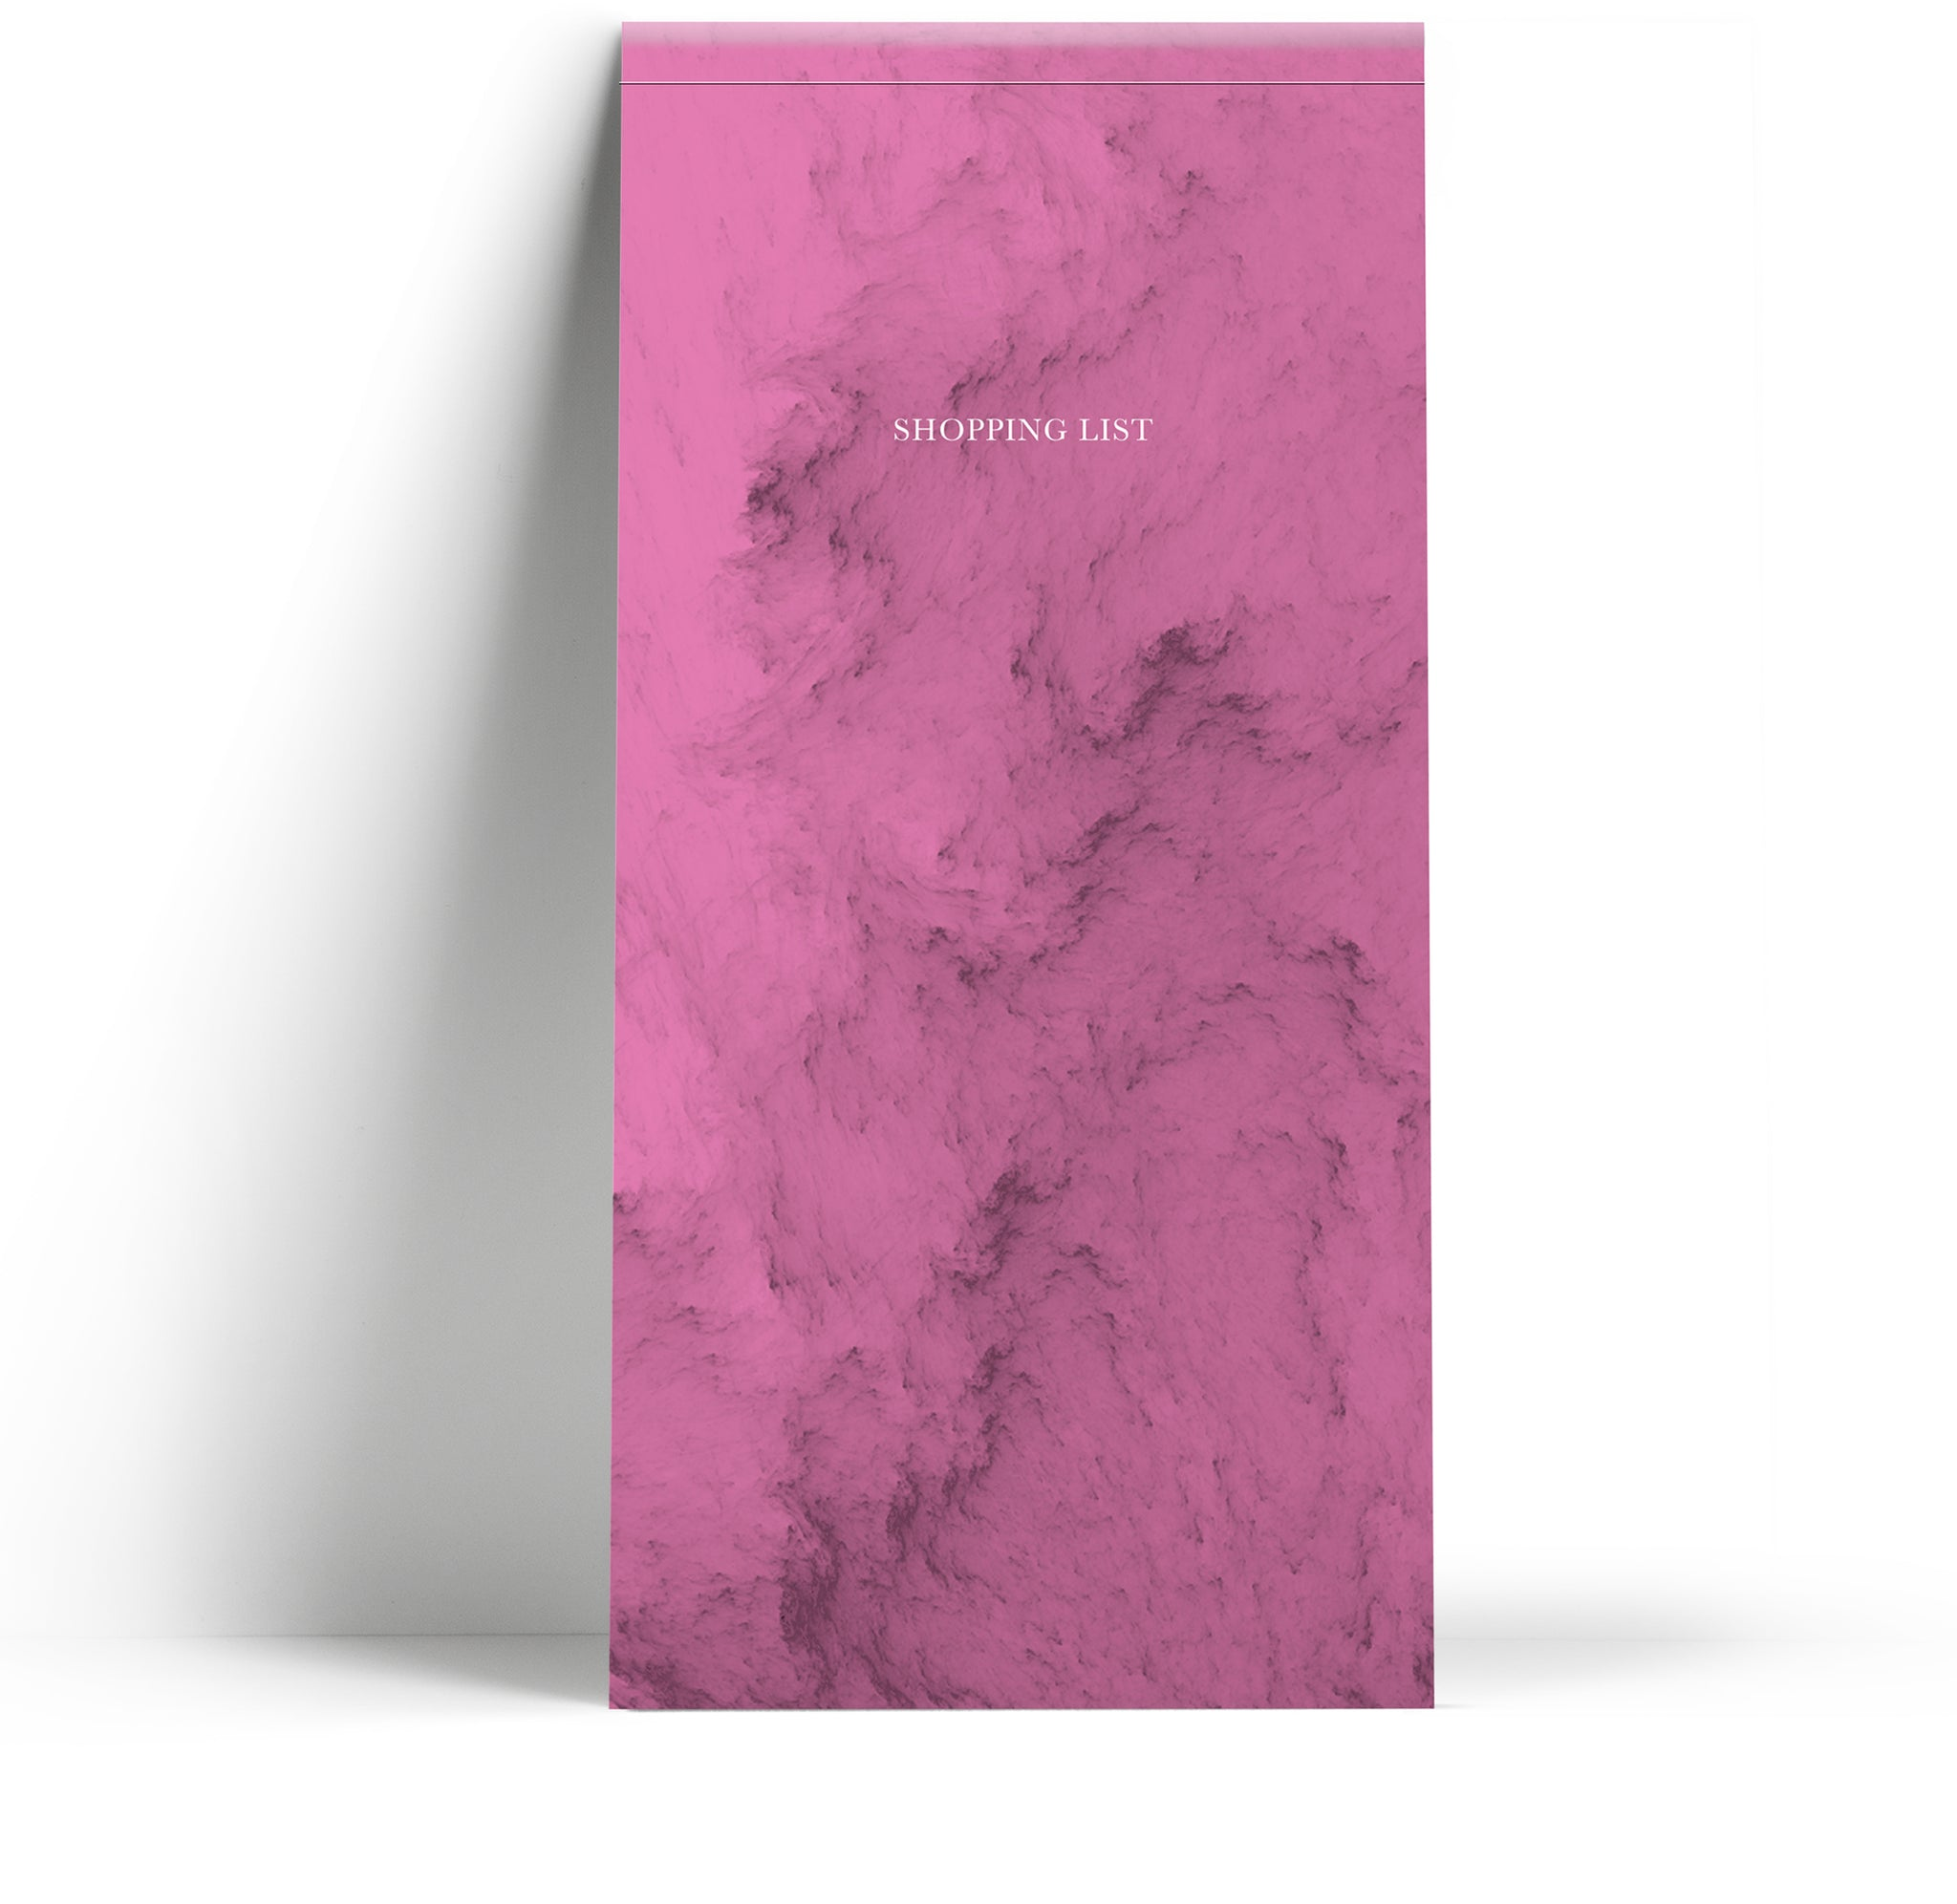 Shopping list pad - Marble Pink